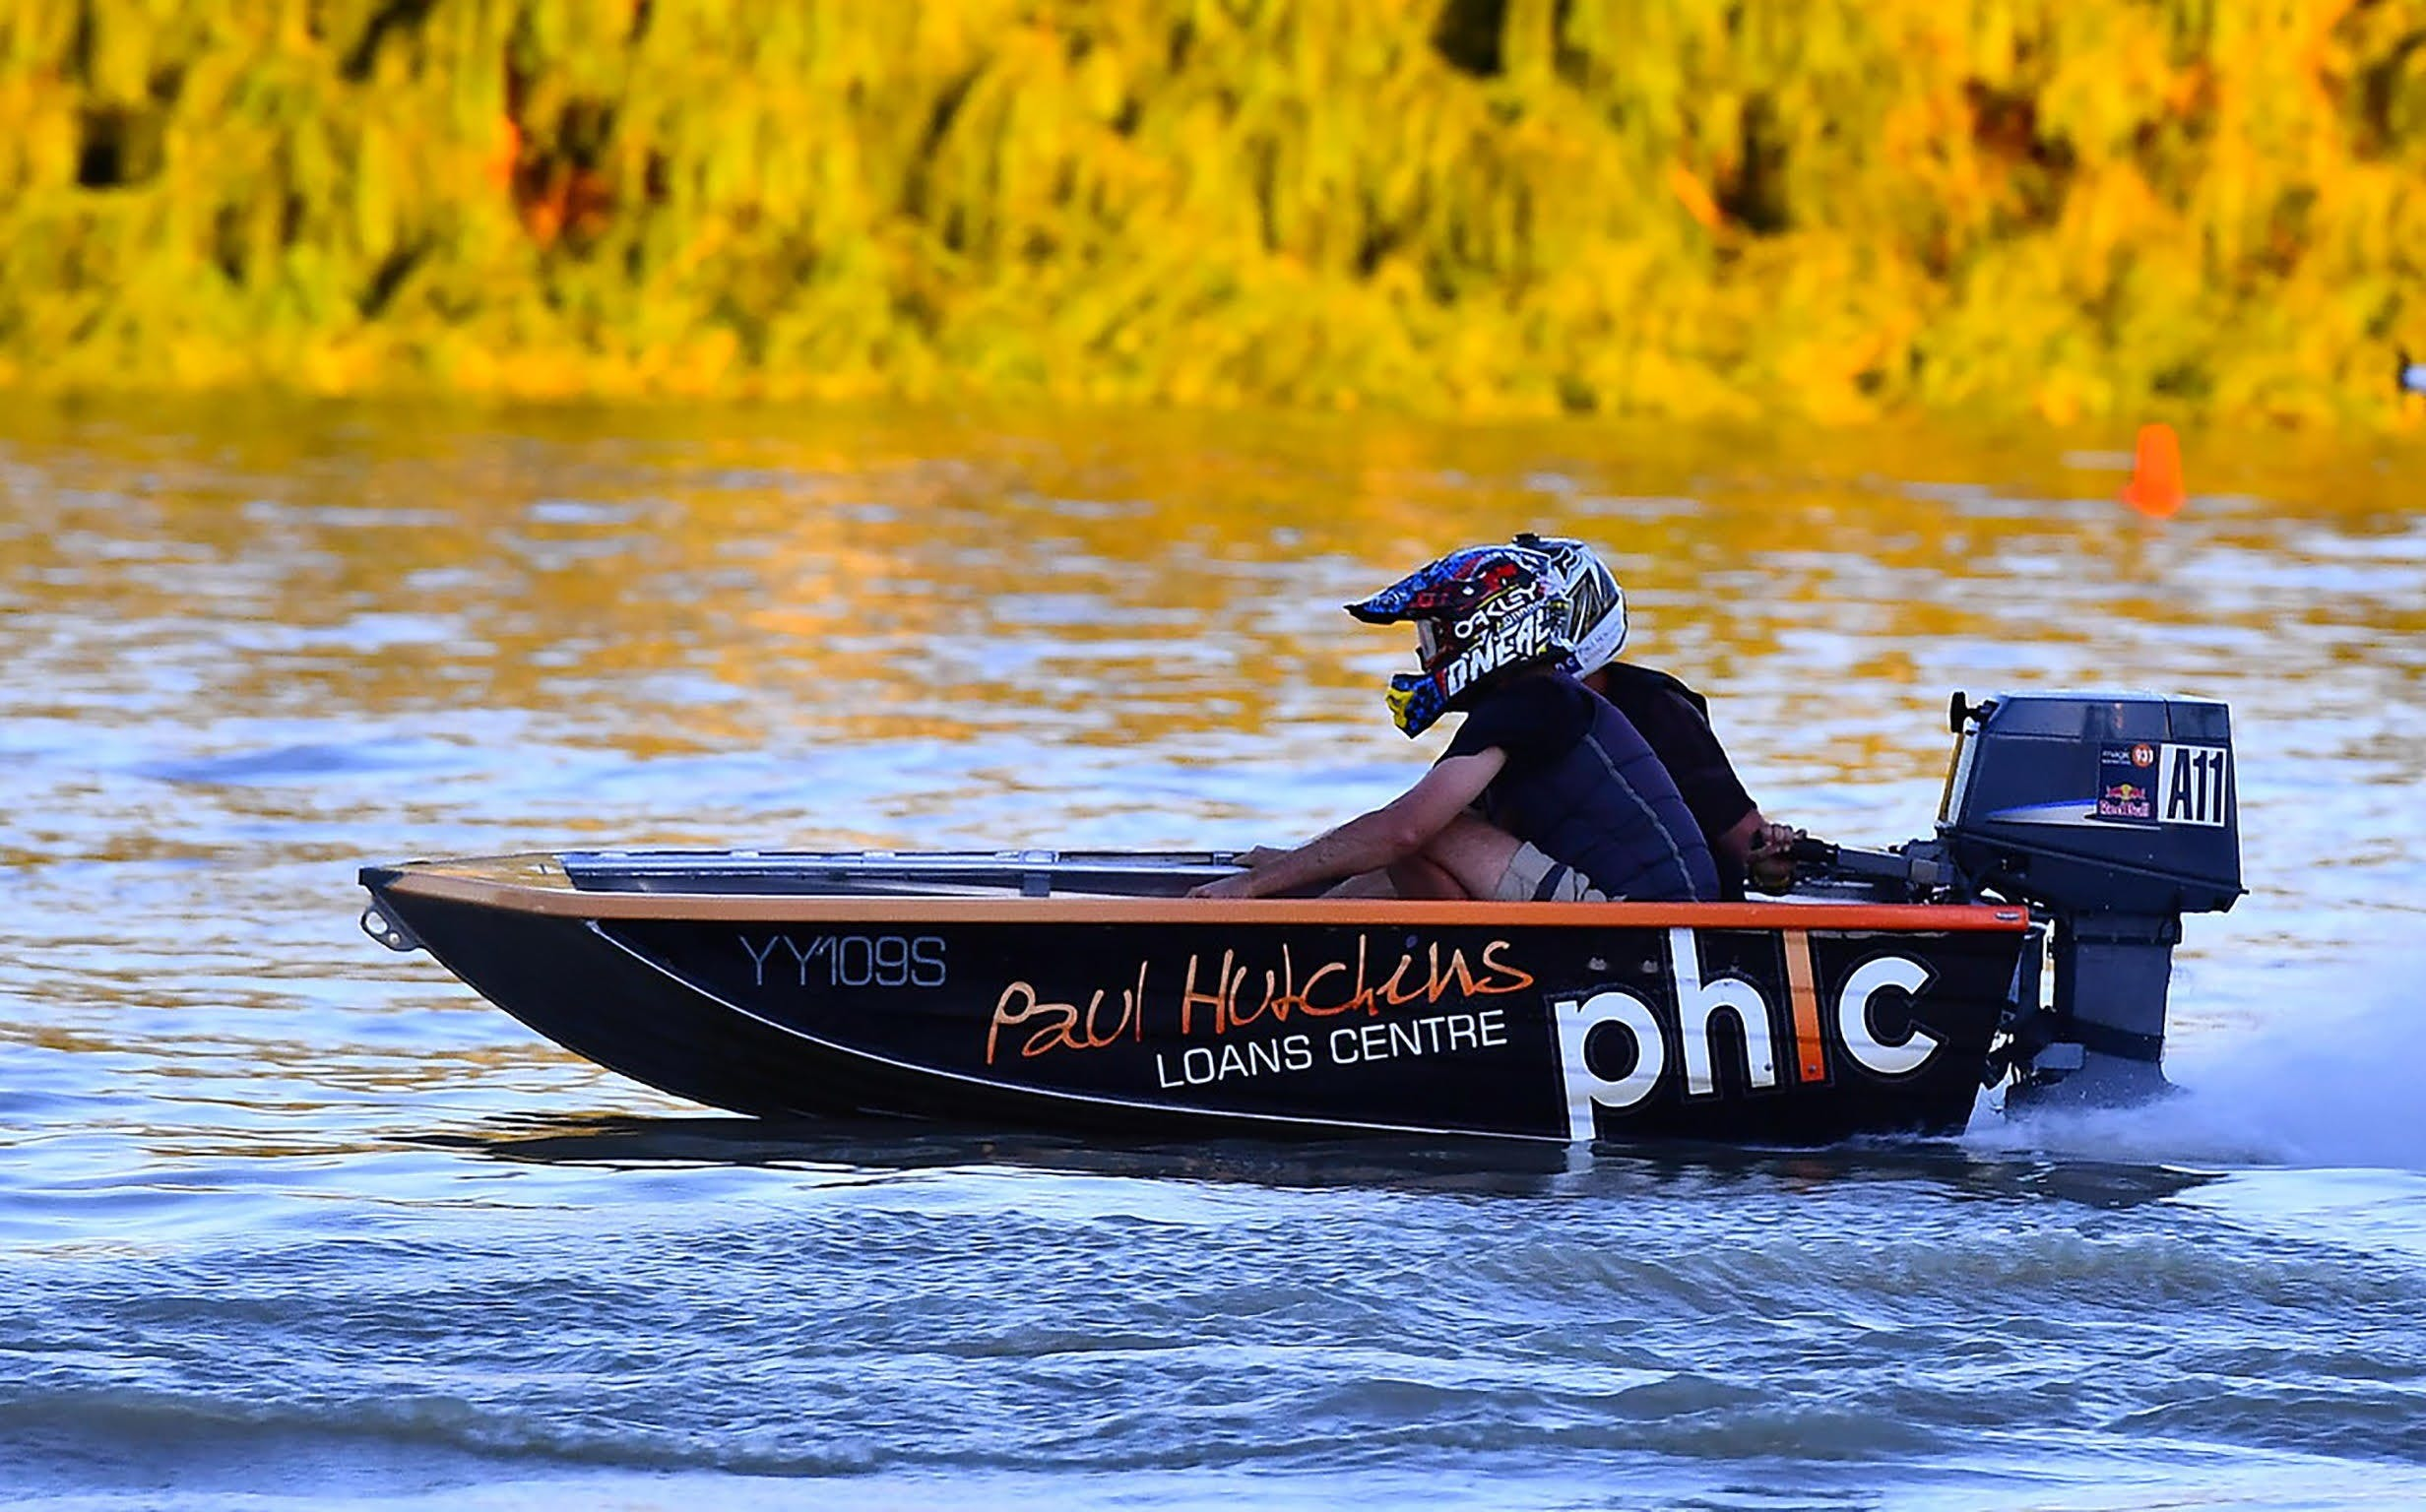 Round 6 Riverland Dinghy Club - The Paul Hutchins Loan Centre Hunchee Run - Yarra Valley Accommodation